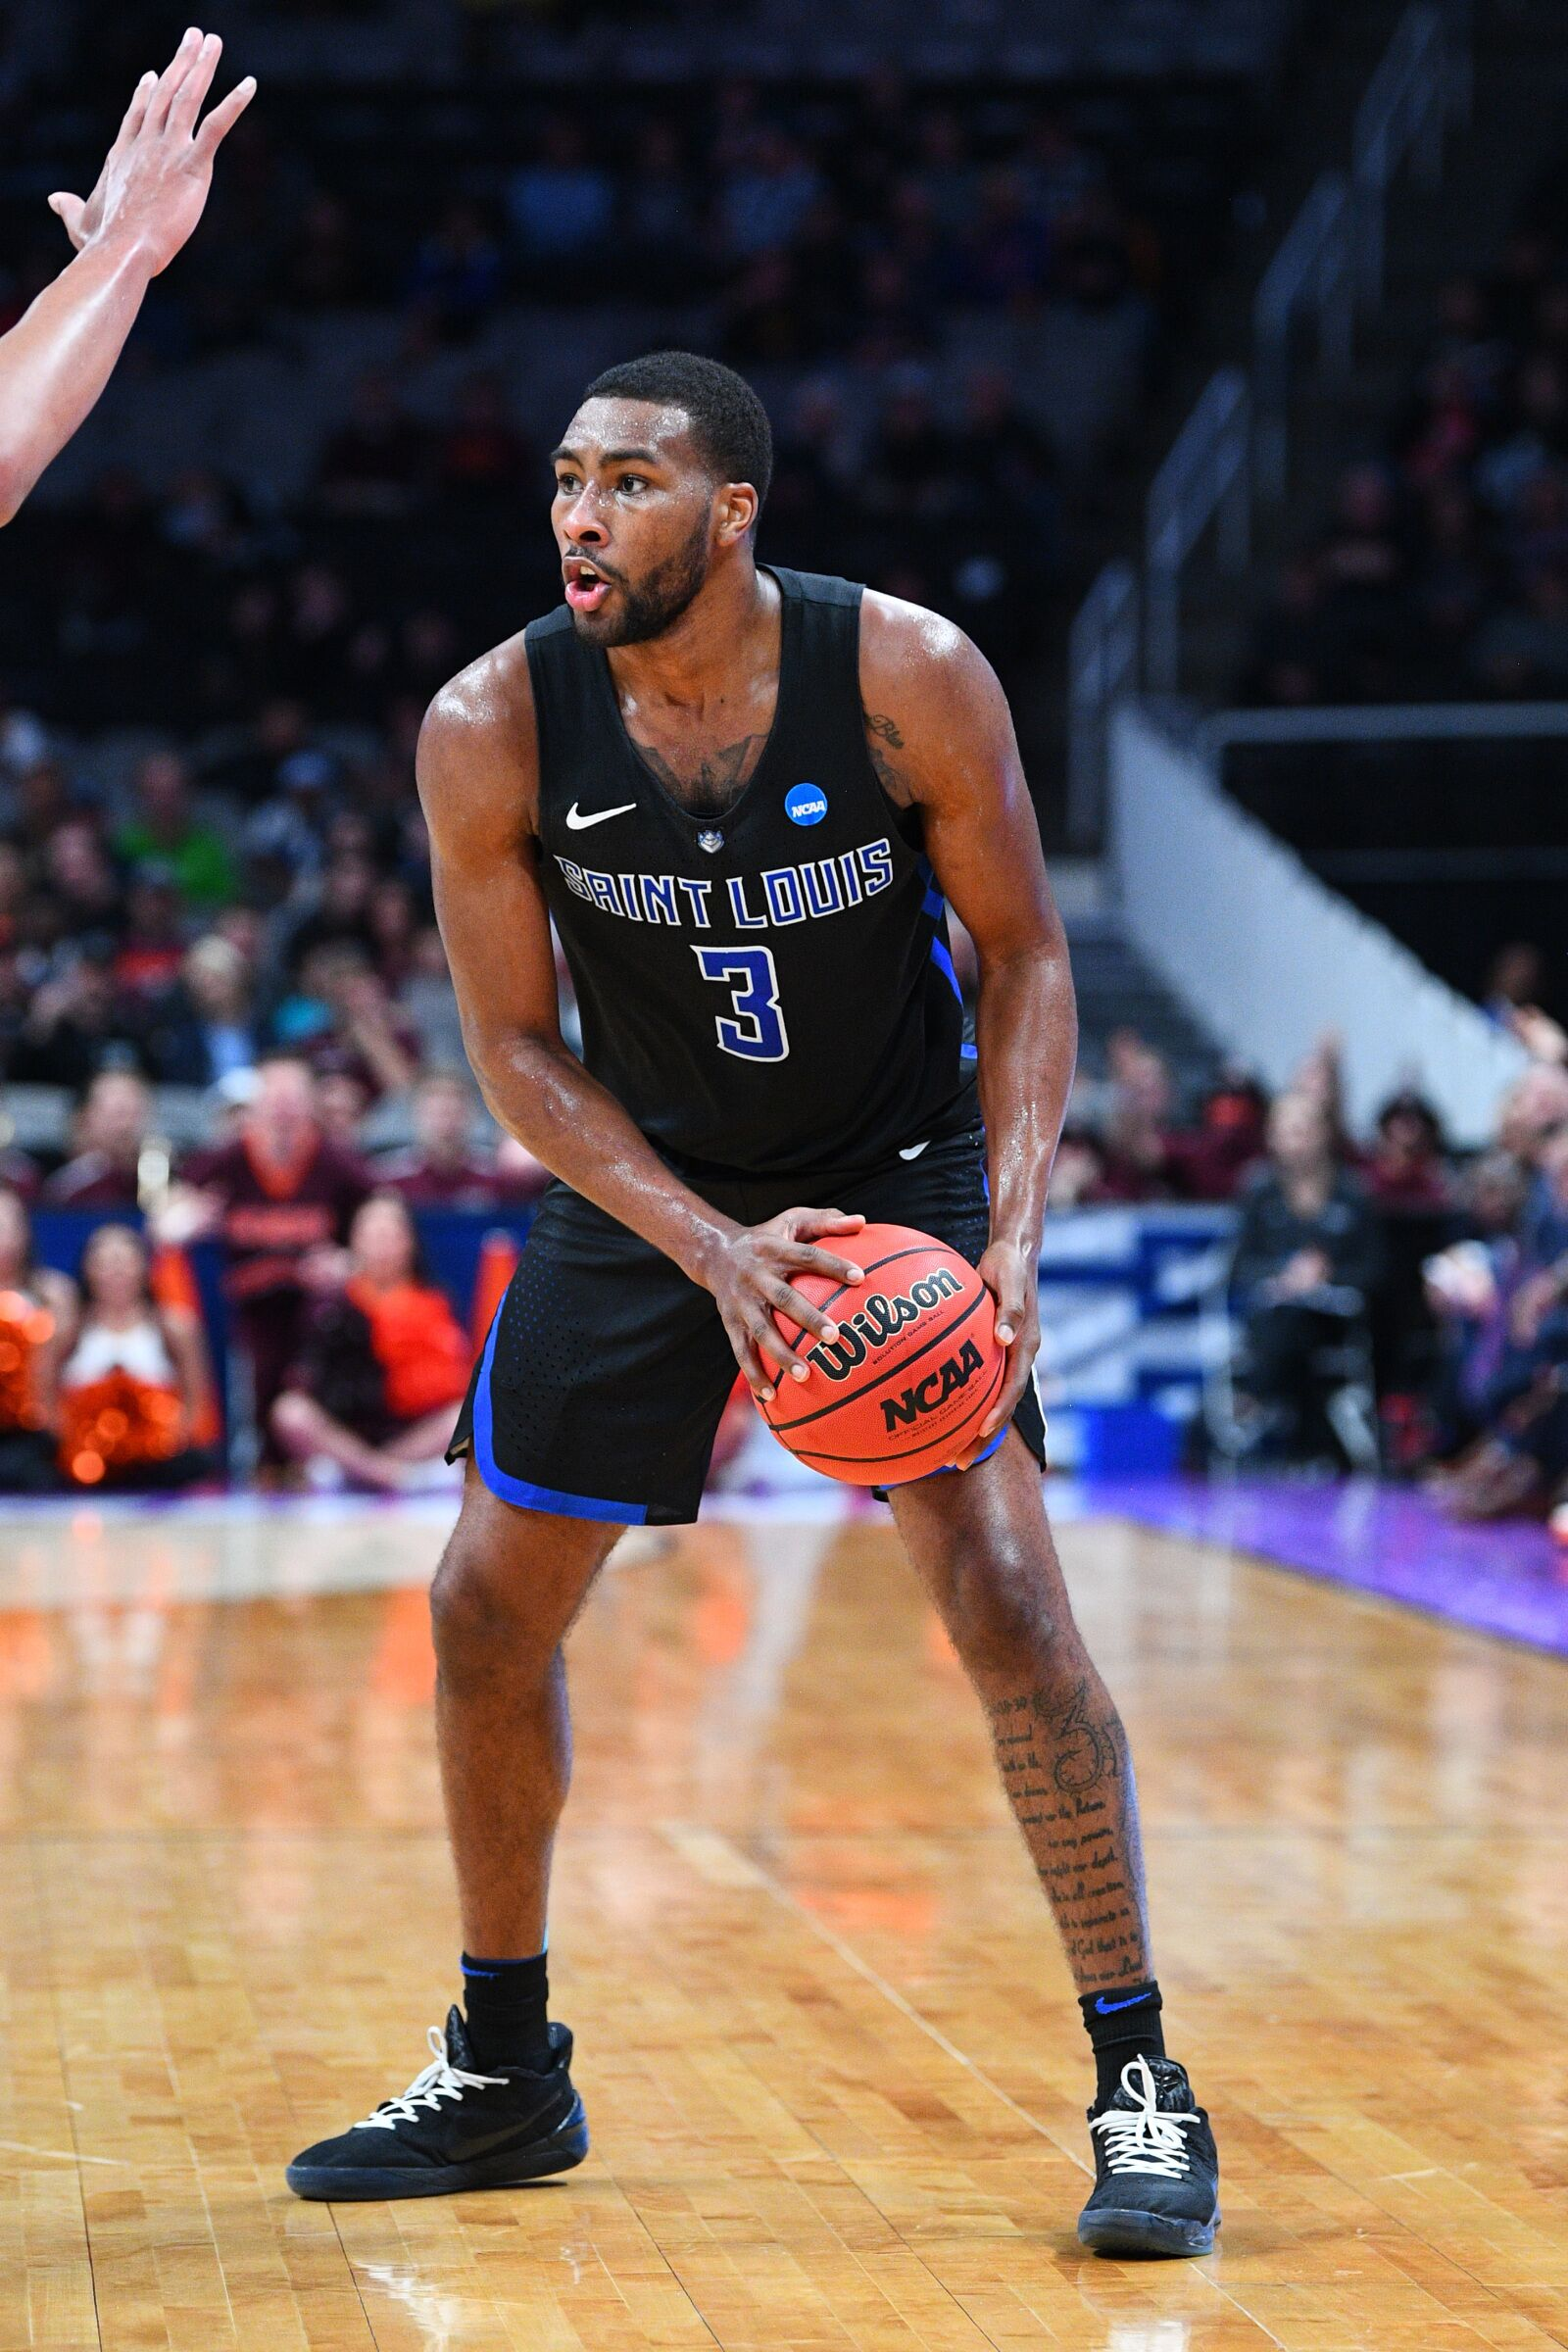 New Orleans Pelicans targeting specific undrafted free agents; sign 3 post-draft